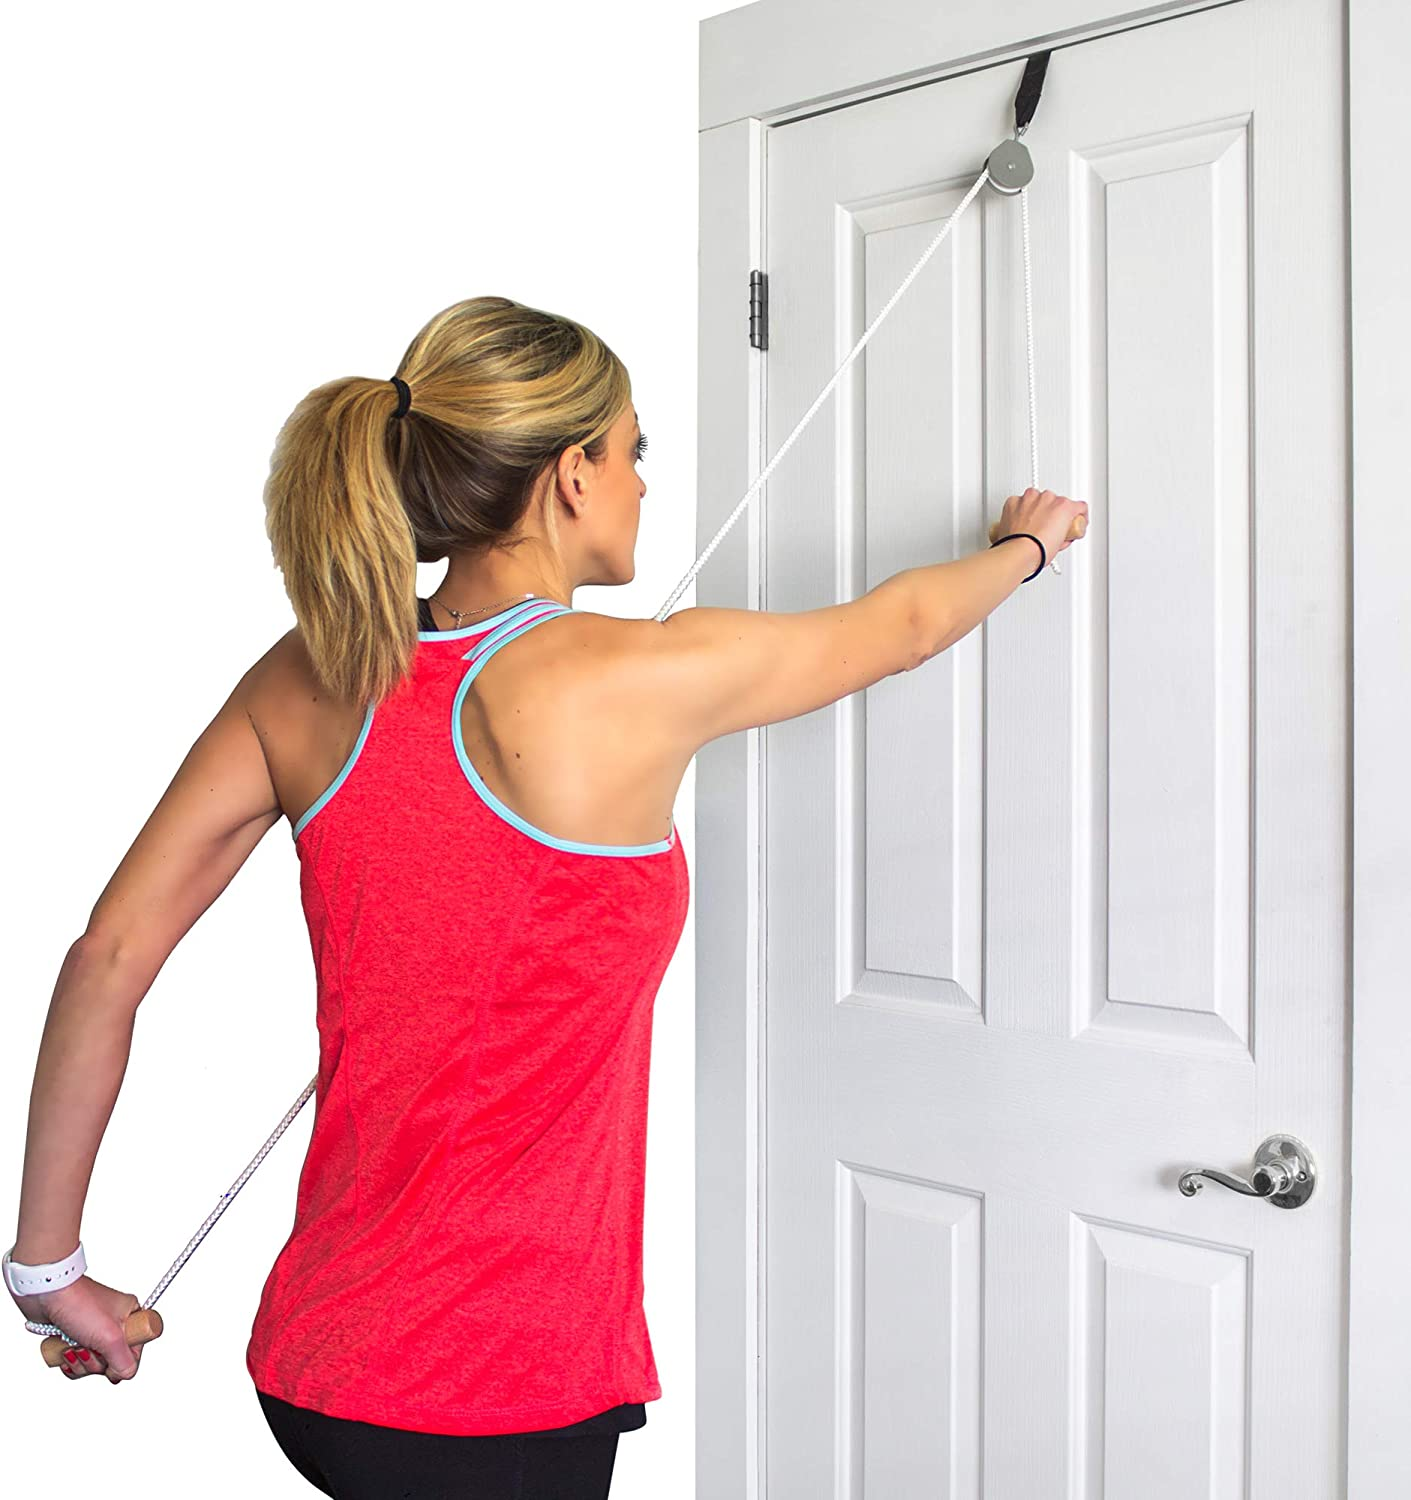 DMI Over the Door Shoulder Pulley for Physical Therapy helps Increase Mobility and Maneuverability on Injured, Elderly or Disabled with Easy to Grip Wooden Dowel Handles, White: Health & Personal Care